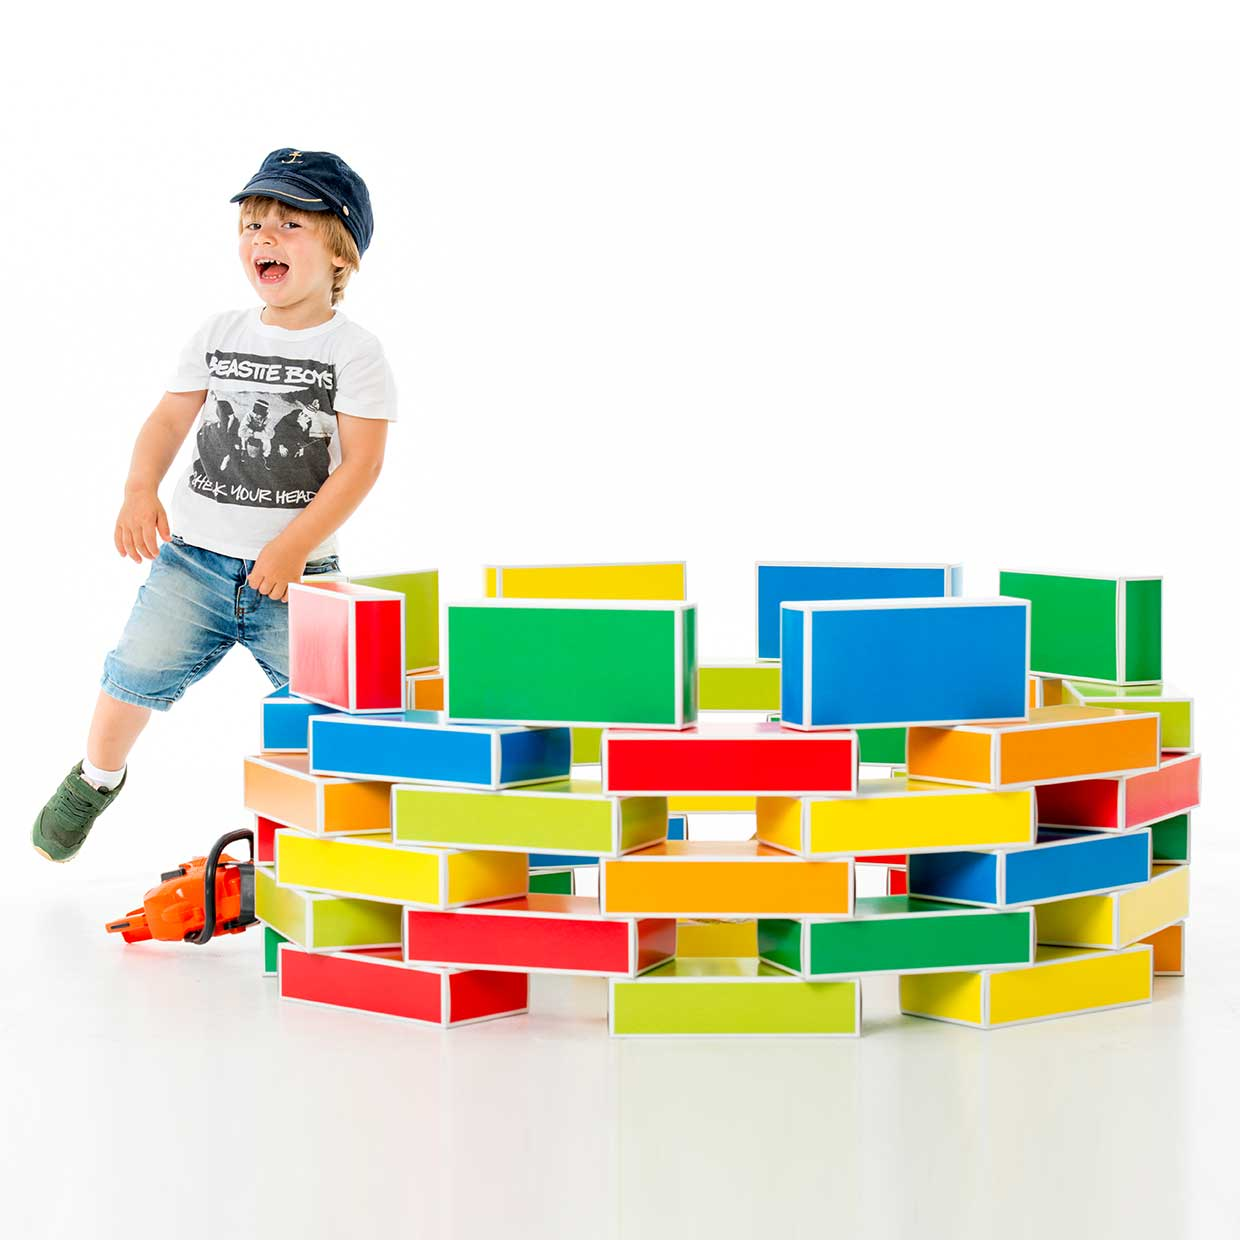 Unique Toys For Toddlers : Buntbox colour bricks eco friendly toys made of